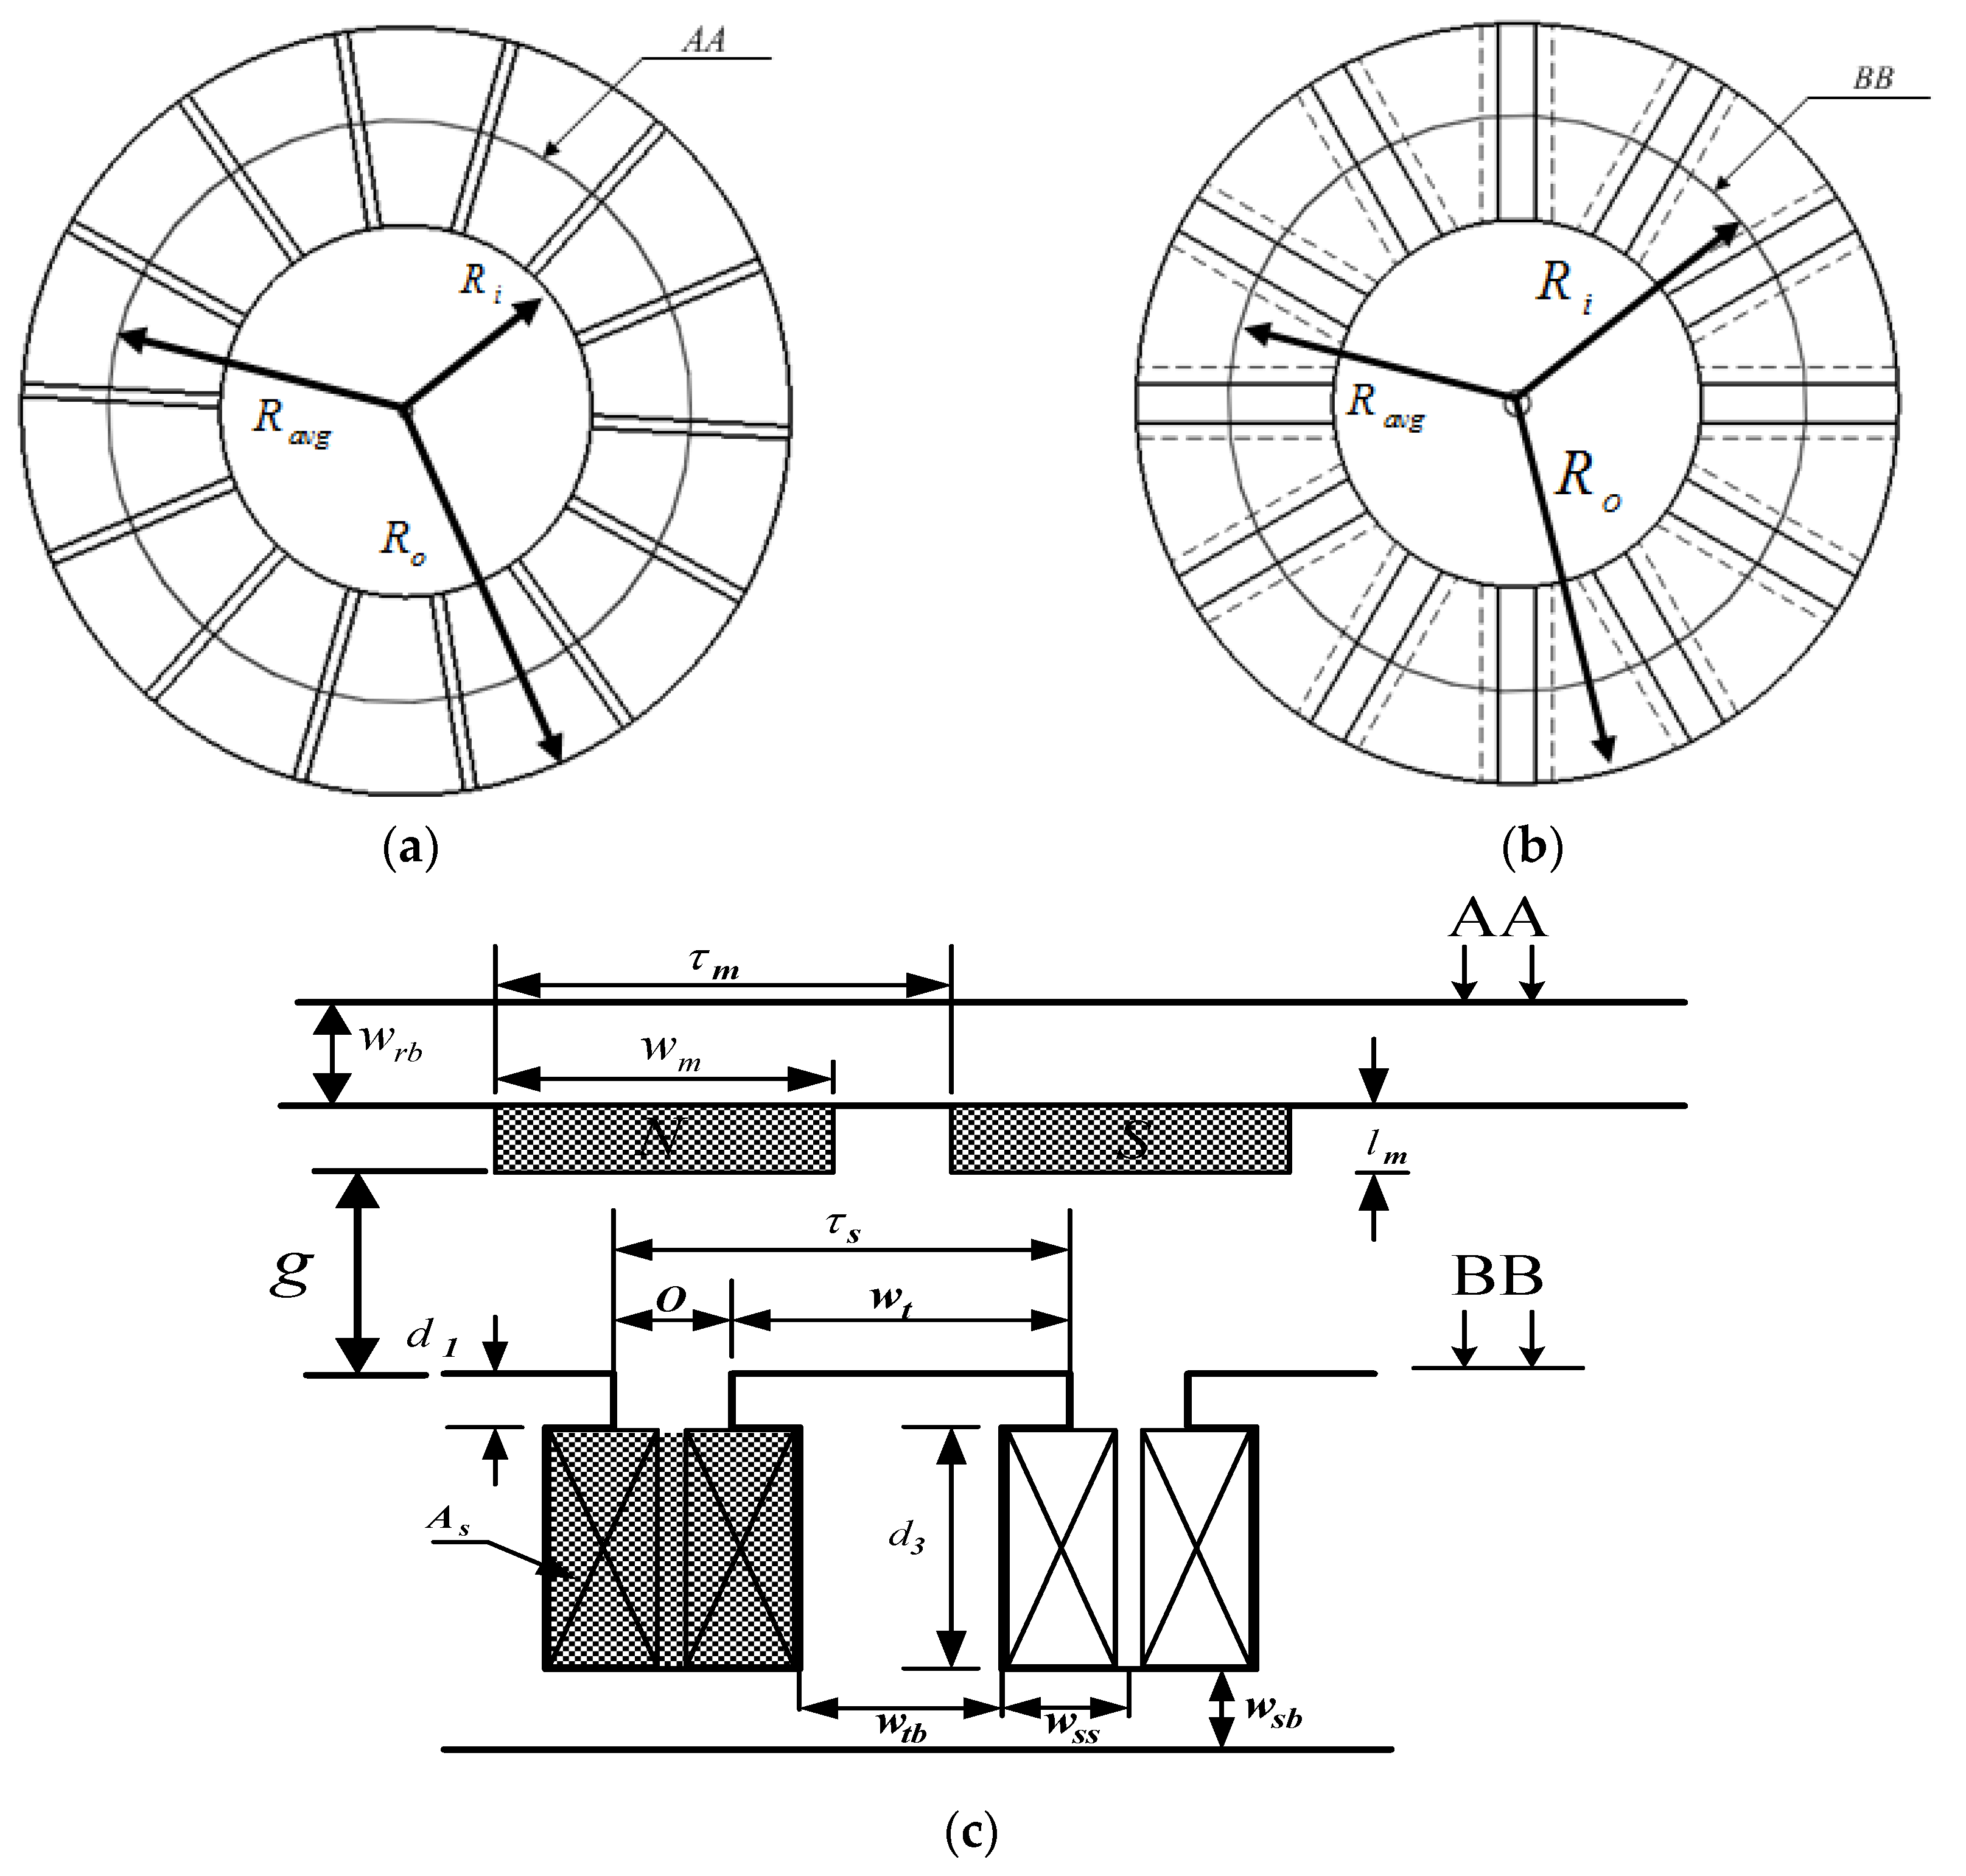 Energies | Free Full-Text | Optimal Design of an Axial-Flux